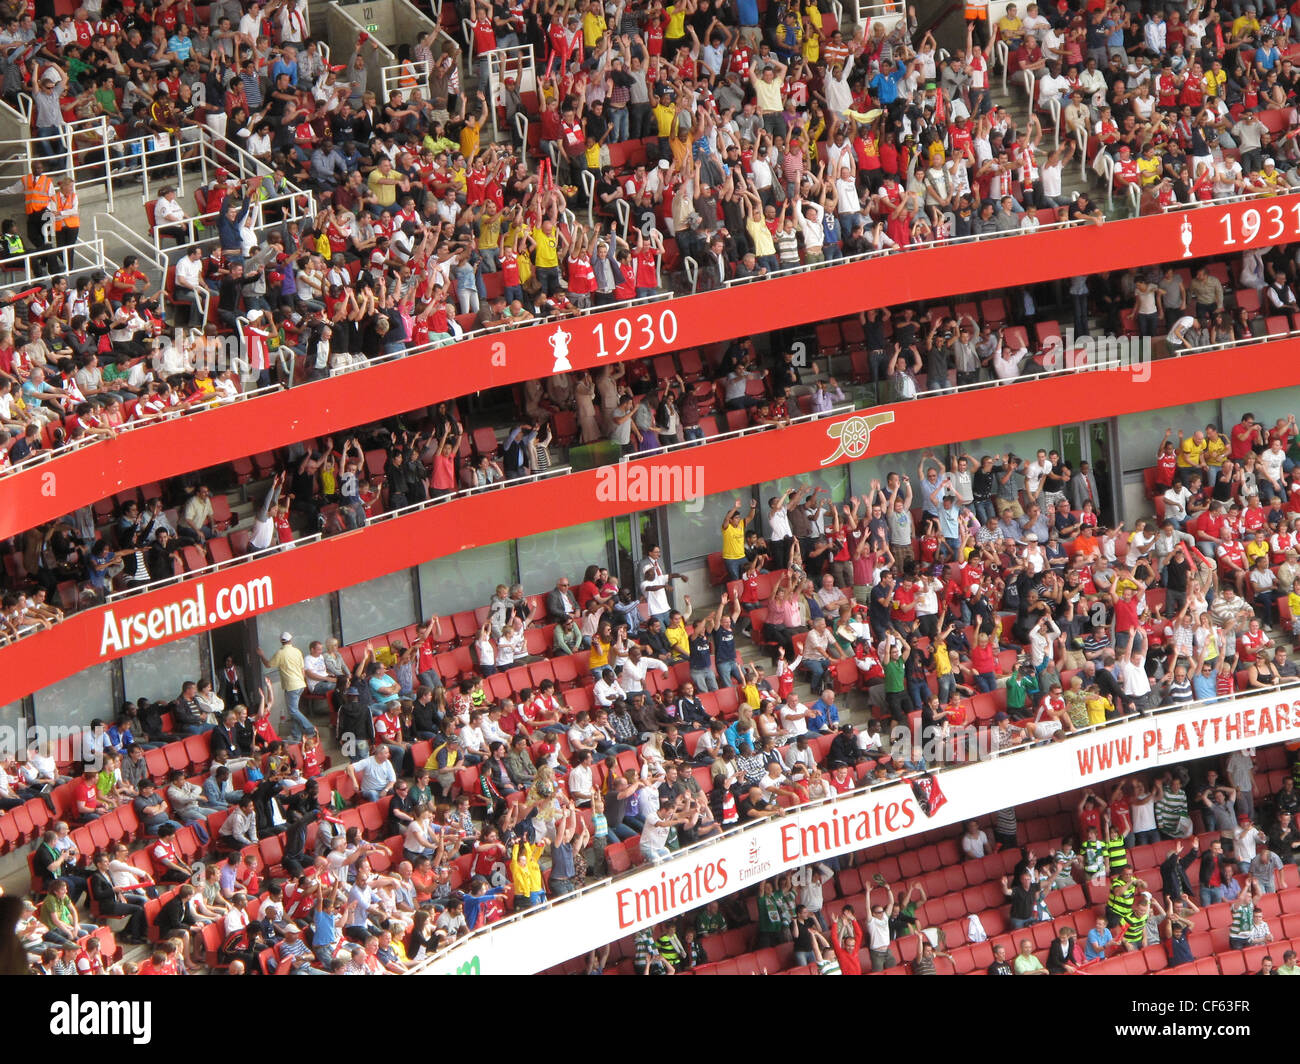 Fans participating in a 'Mexican wave' during the Emirates Cup tournament at Arsenal's Emirates Stadium. - Stock Image